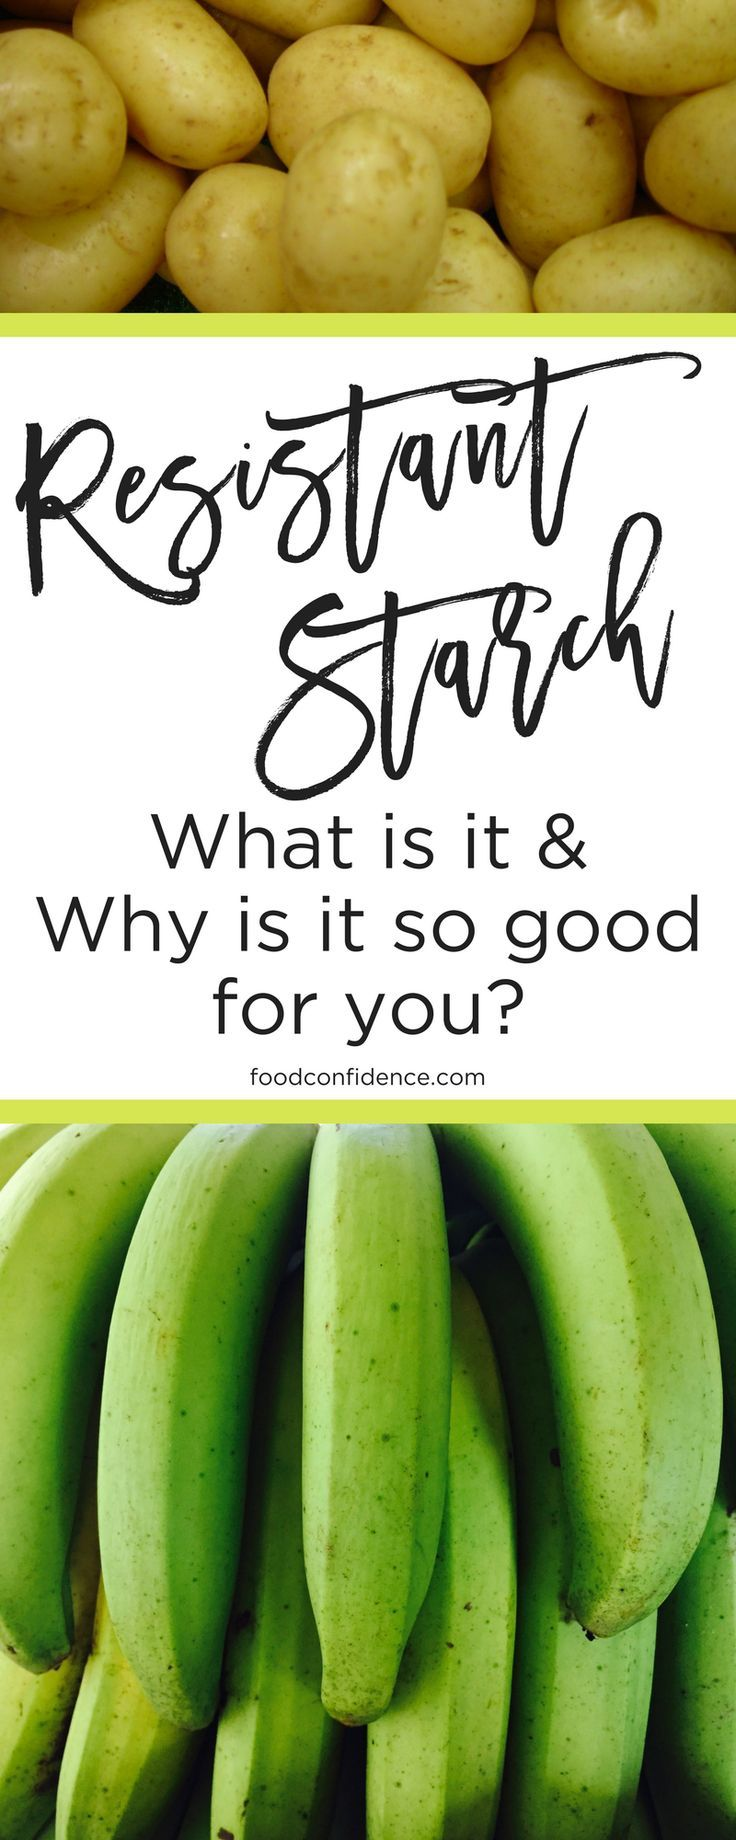 Resistant Starch: What Is It, and Why Is It Good for You #resistant #starch #healthyrecipes